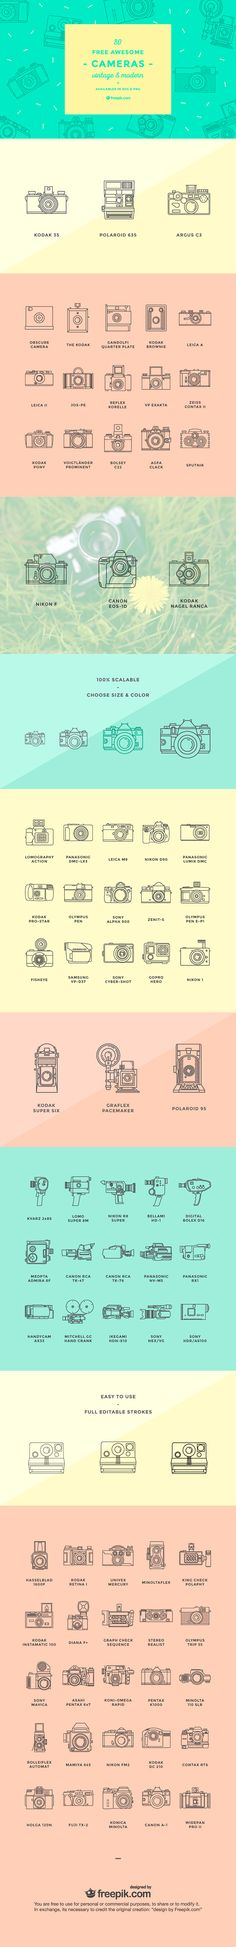 60 free outline icon sets perfect for contemporary designs - Canva Design School